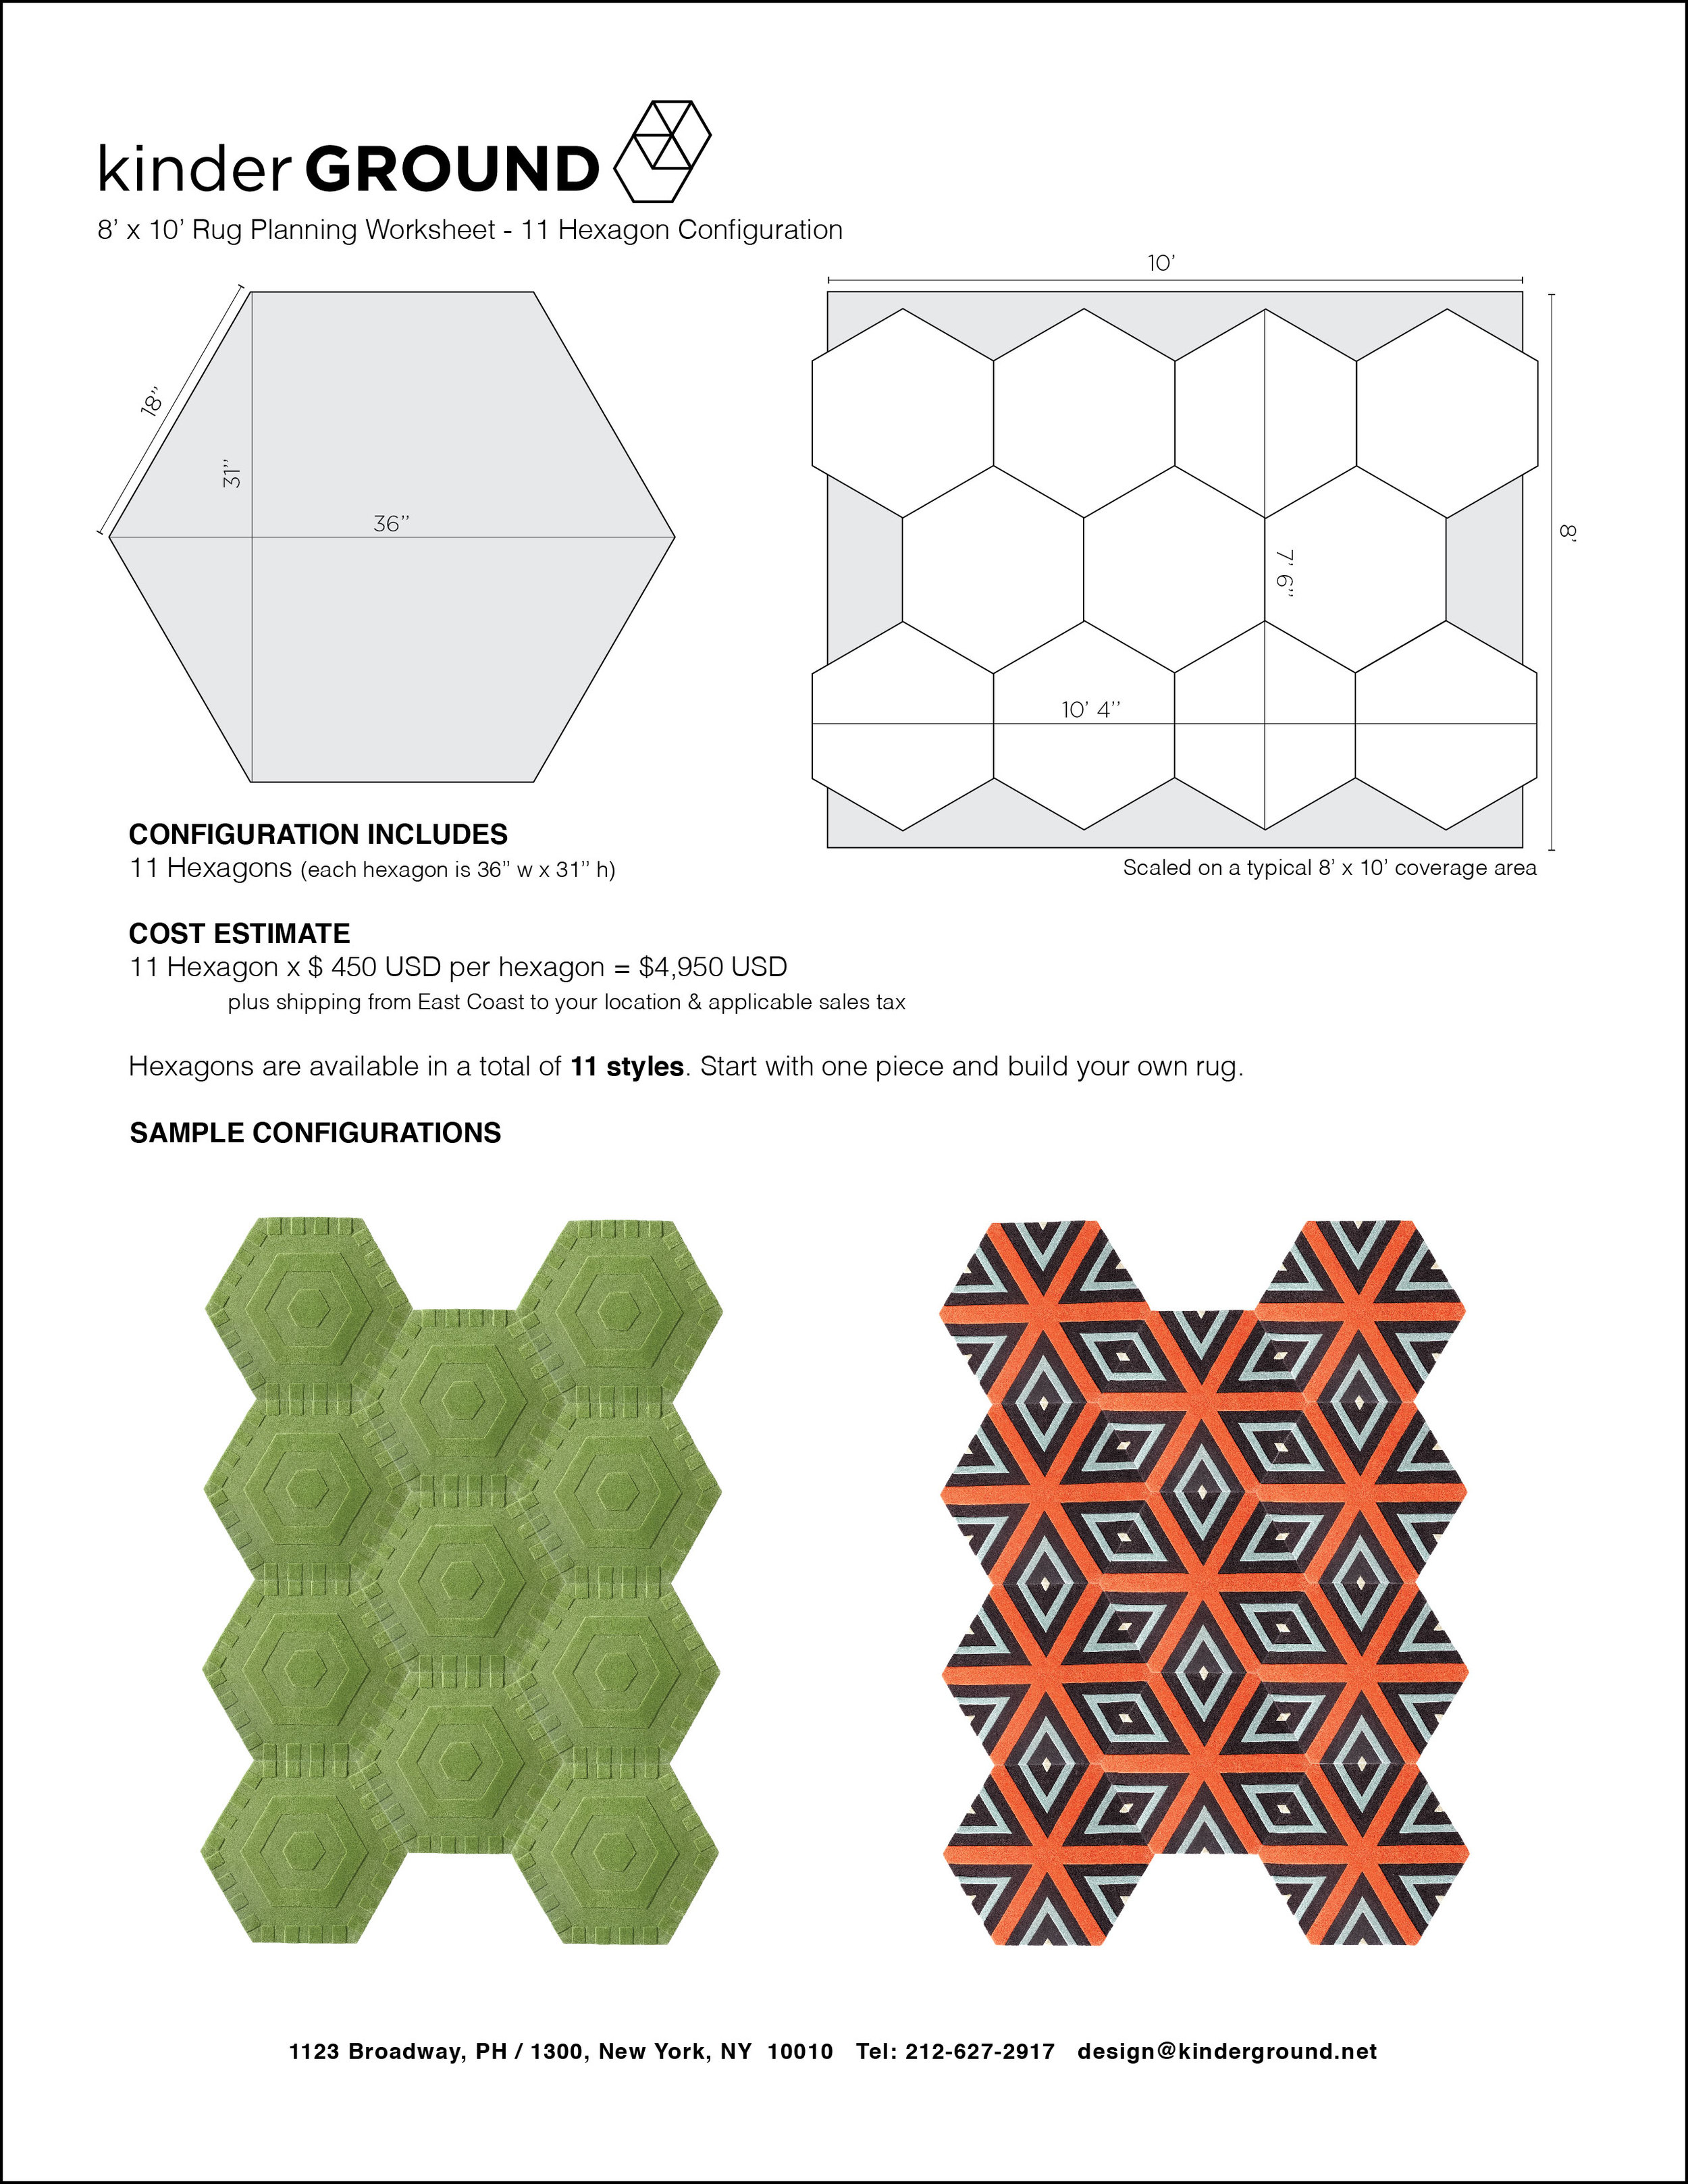 11-Hexagon Configuration